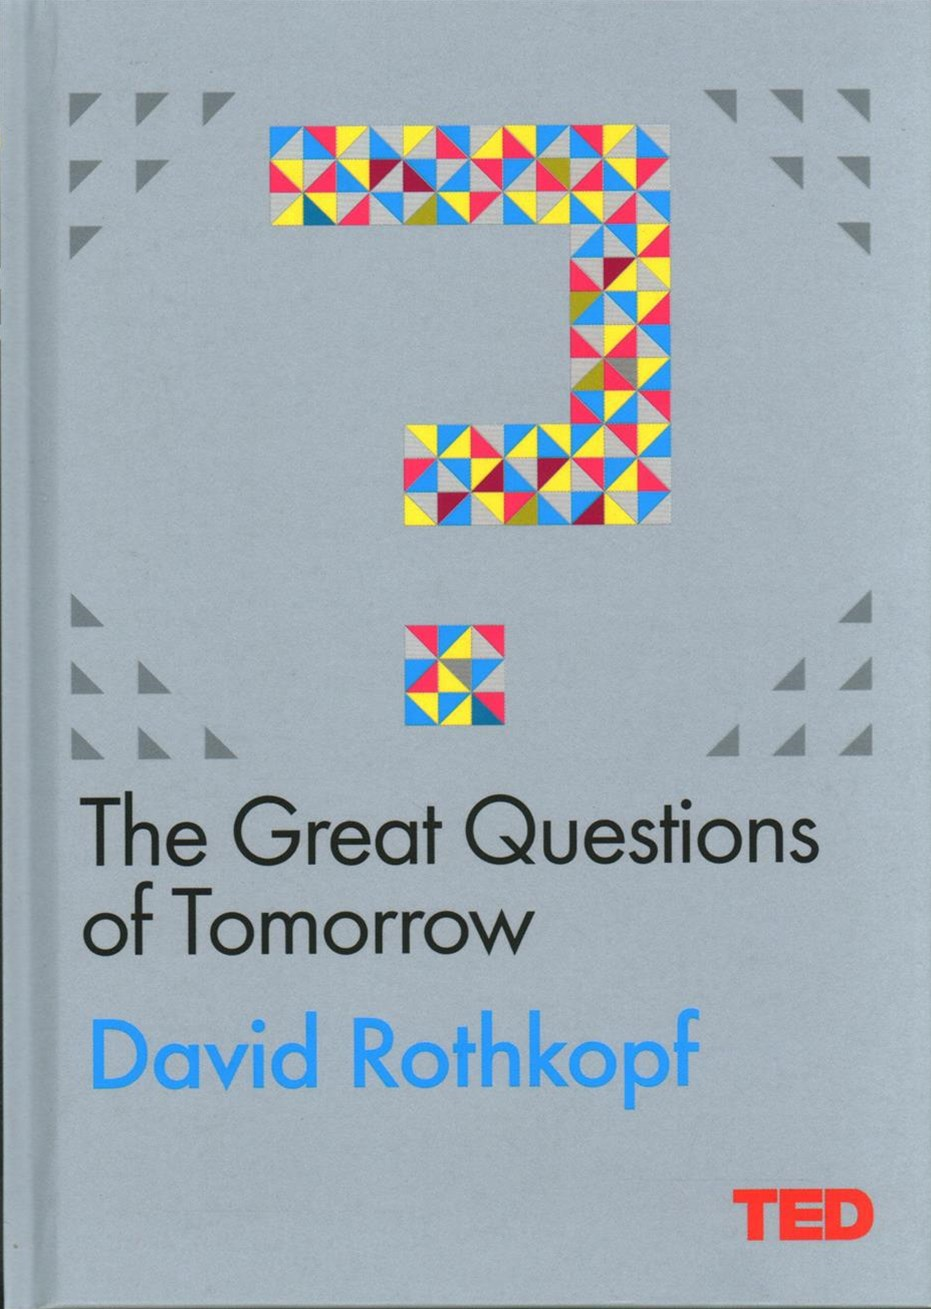 TED: The Great Questions of Tomorrow